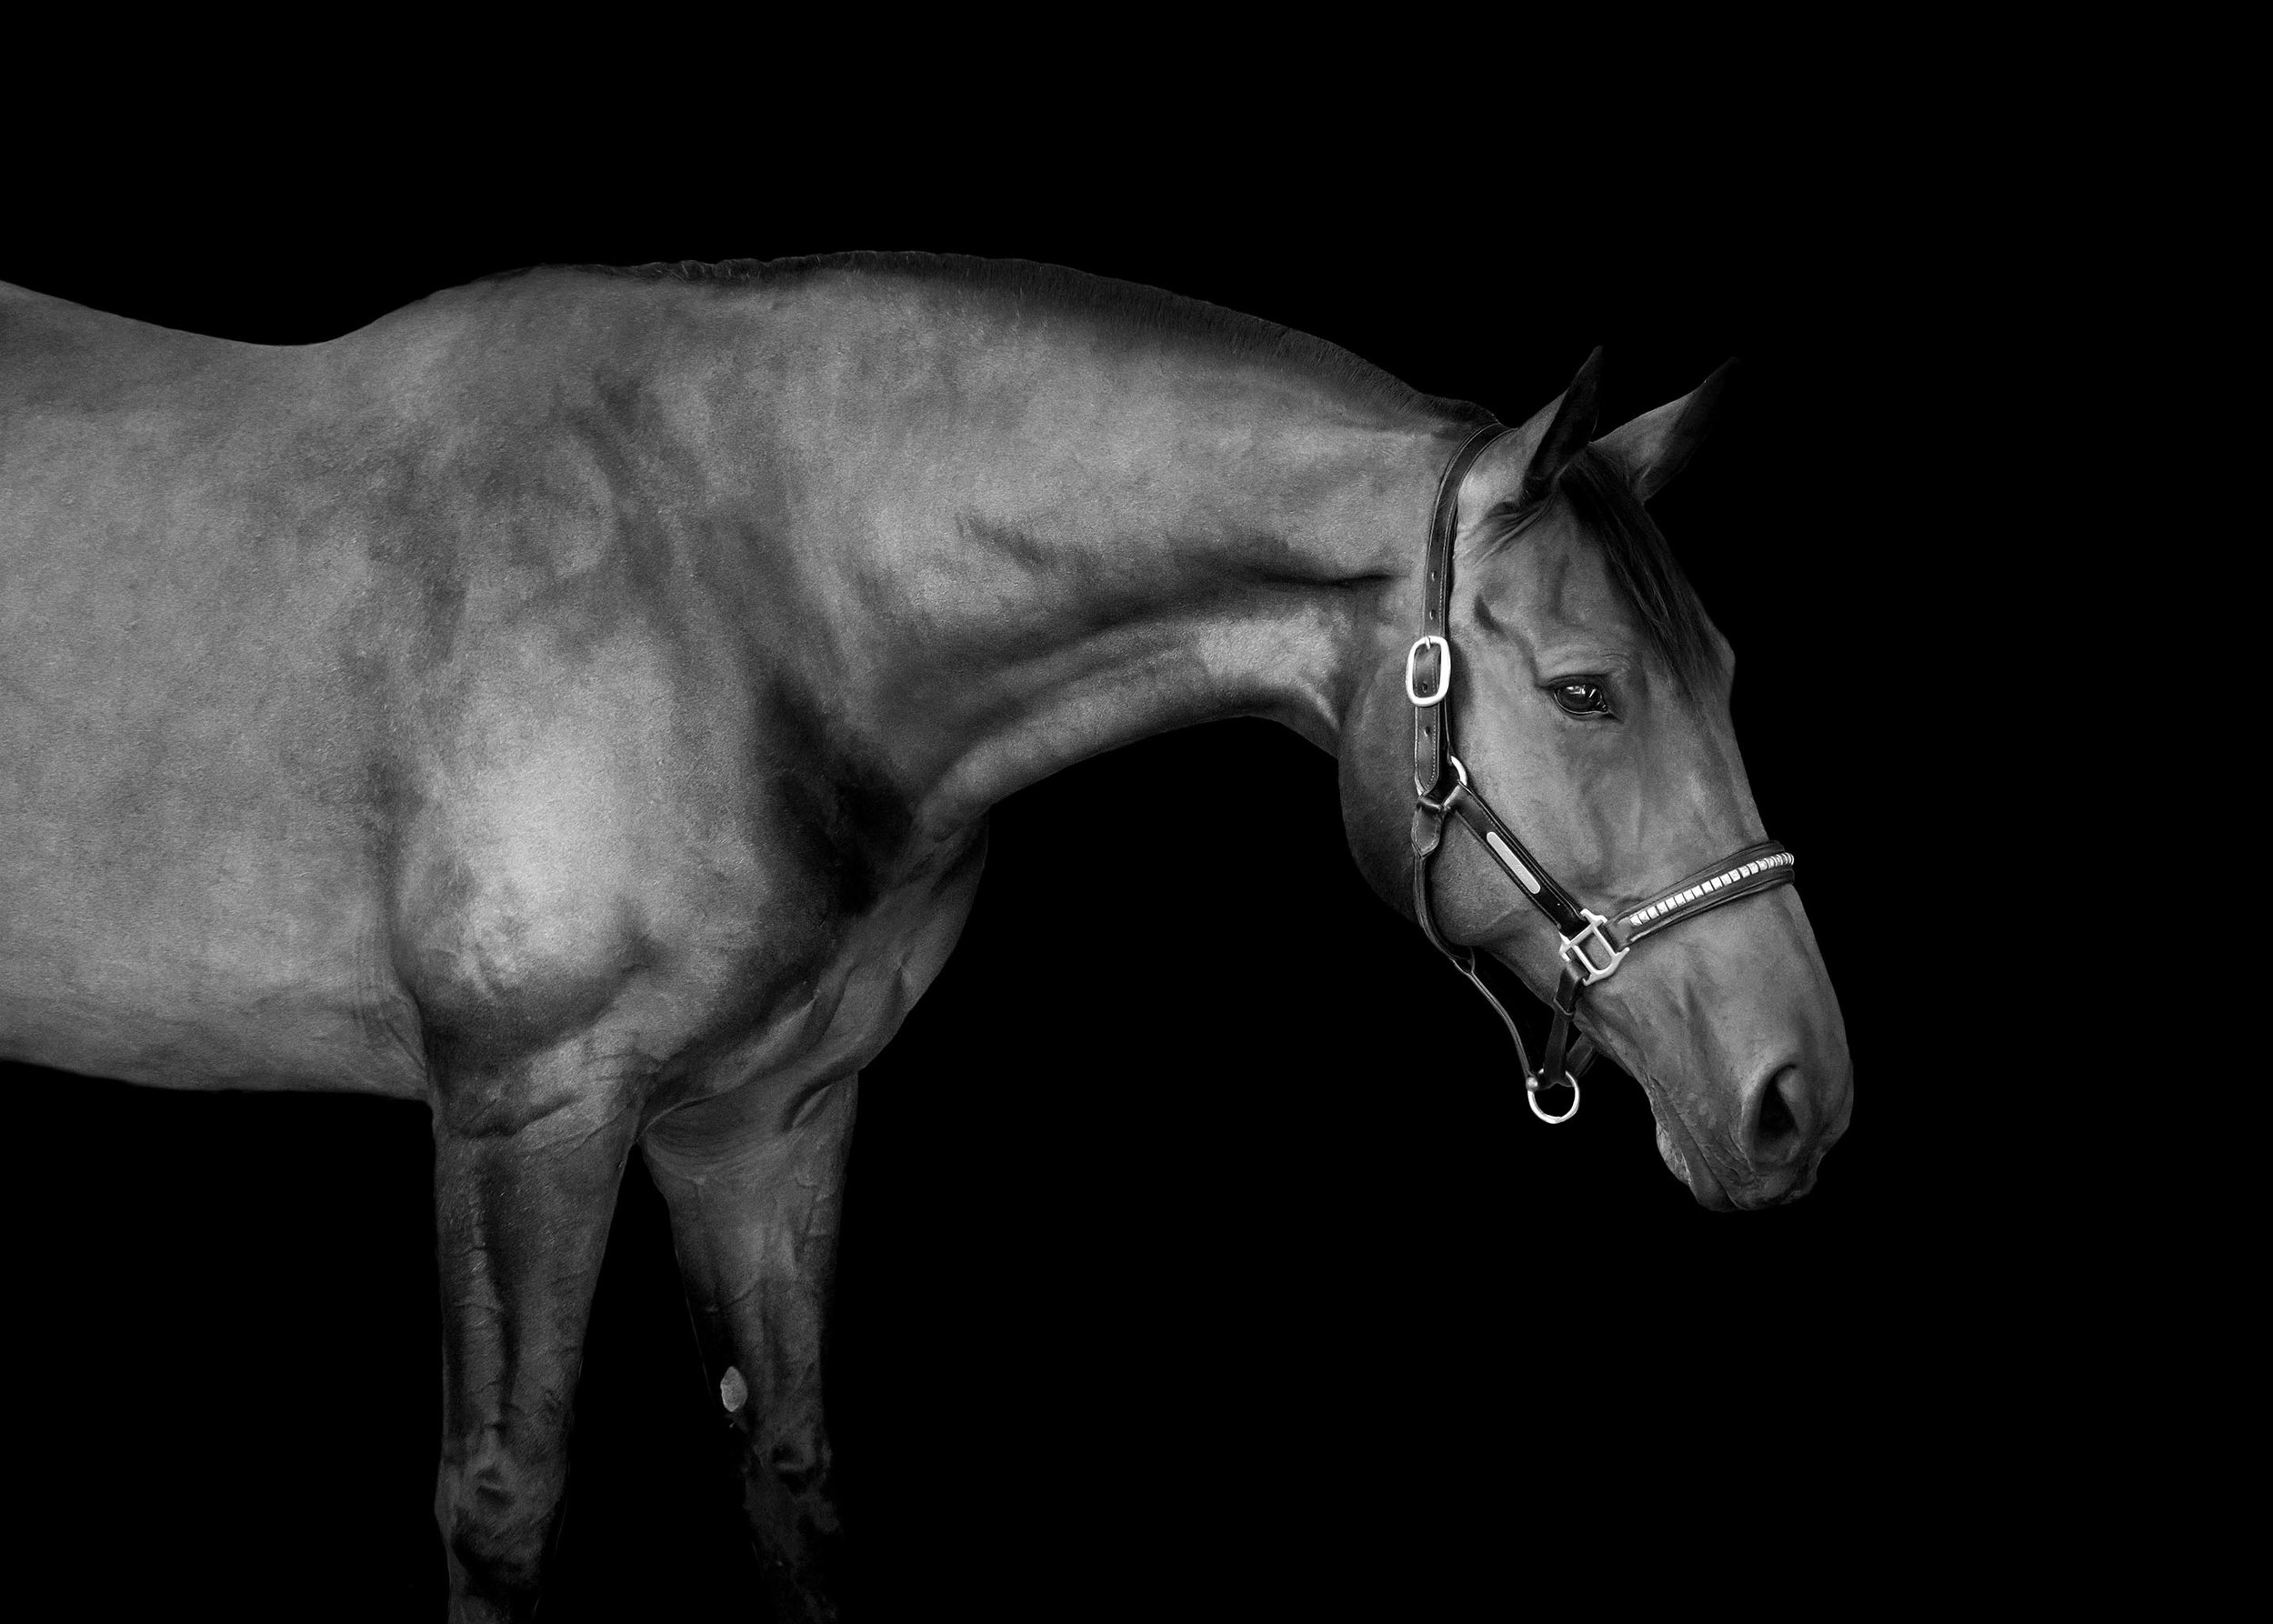 horse-black-background-portrait.jpg